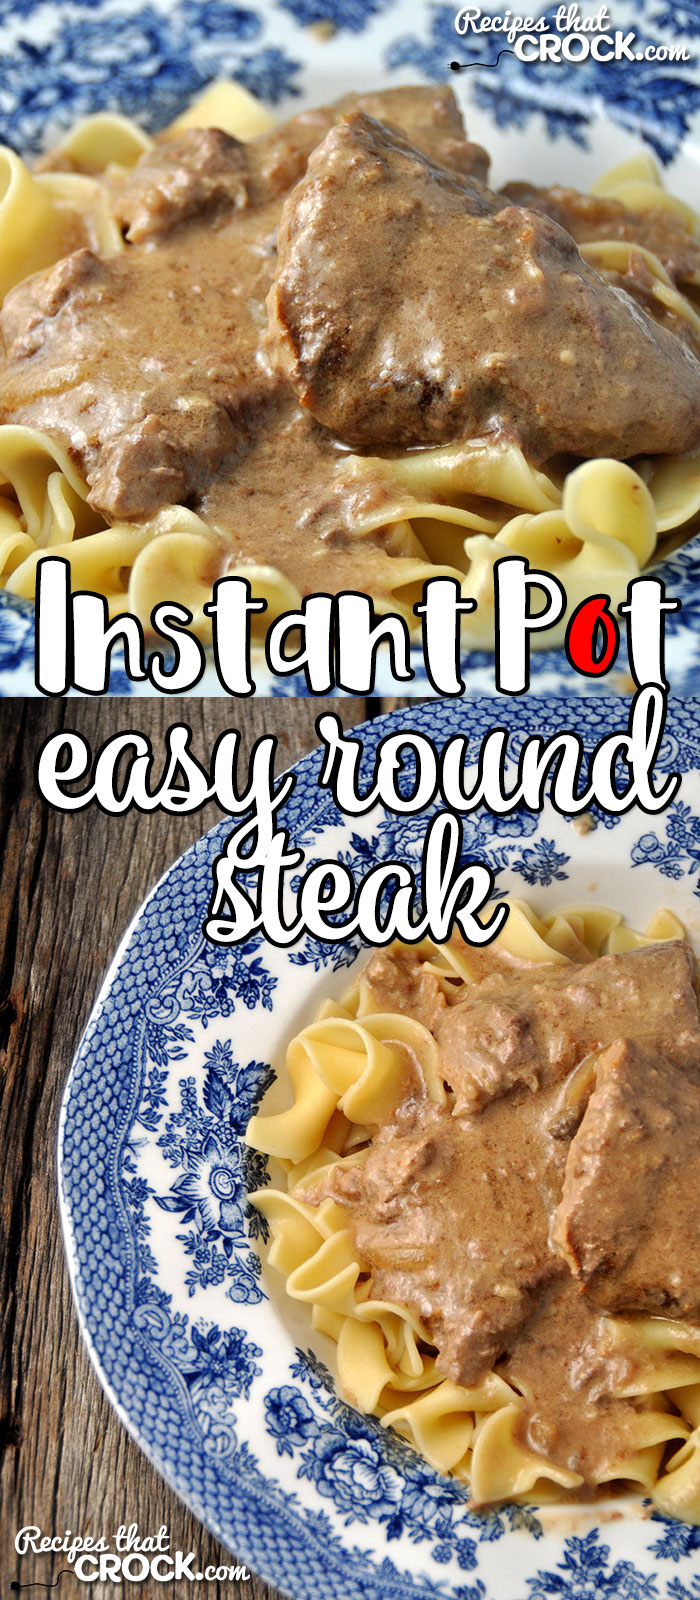 If you are looking for a super easy comfort food recipe that takes less than an hour start to finish, I have you covered. This Easy Instant Pot Round Steak takes a tougher cut of meat and makes it super tender super fast!